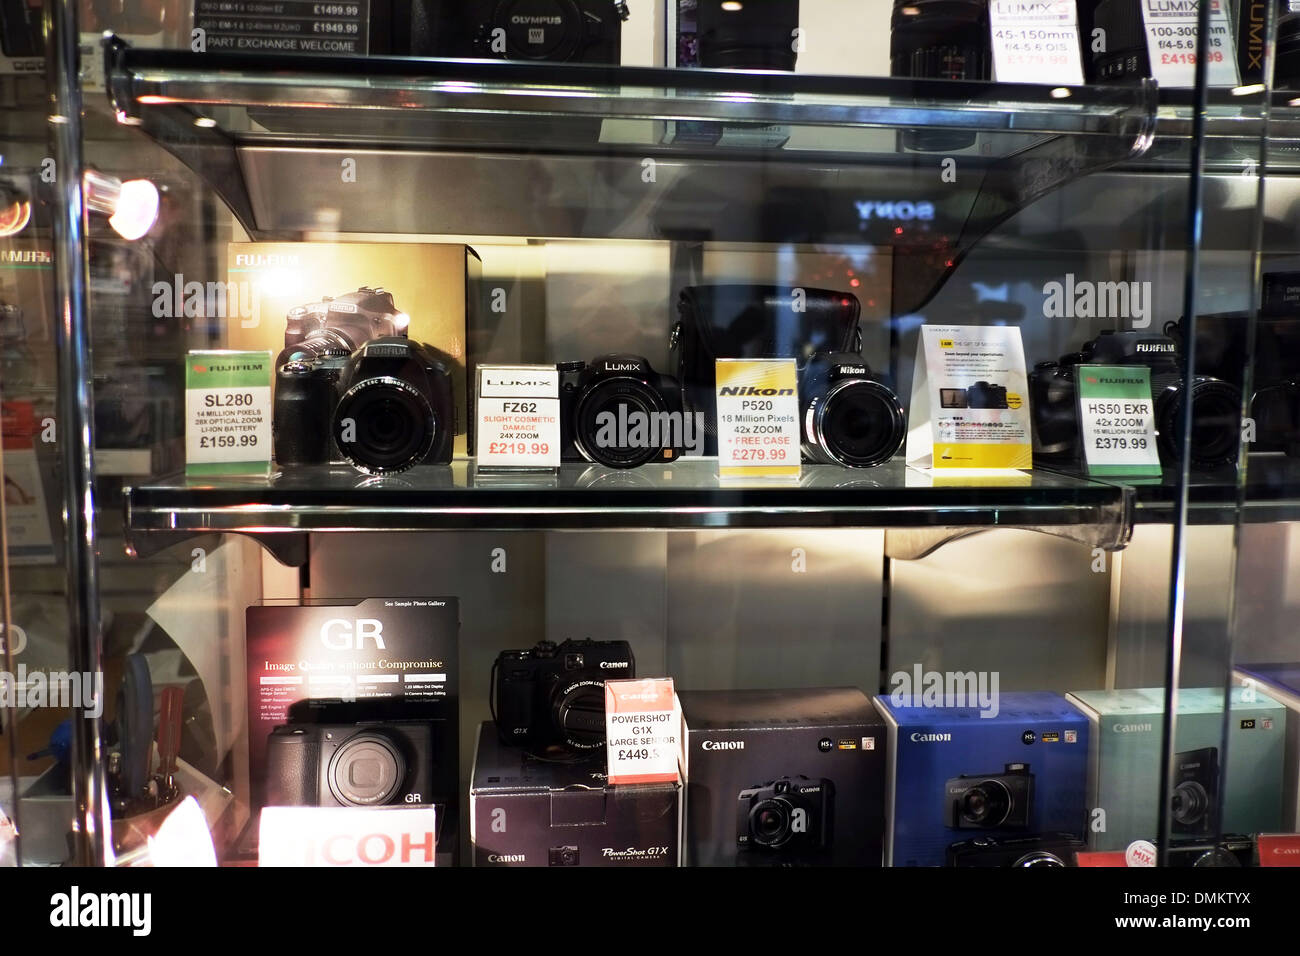 Fuji canon nikon camera display cabinet in shop new cameras for sale in glass case cabinet lens lenses displayed - Stock Image